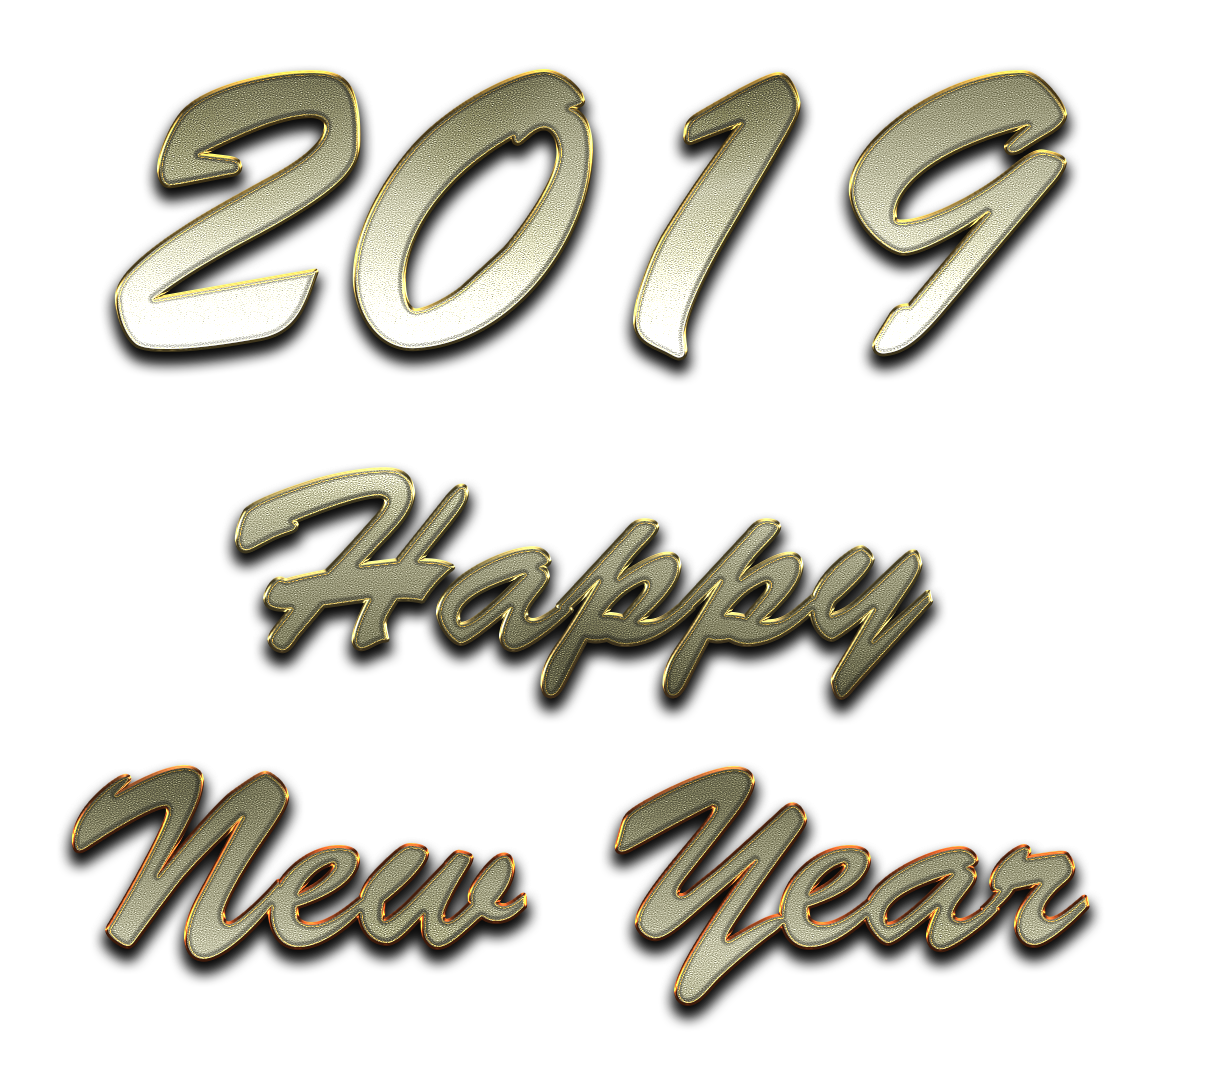 2019 Happy New Year PNG Transparent Images.